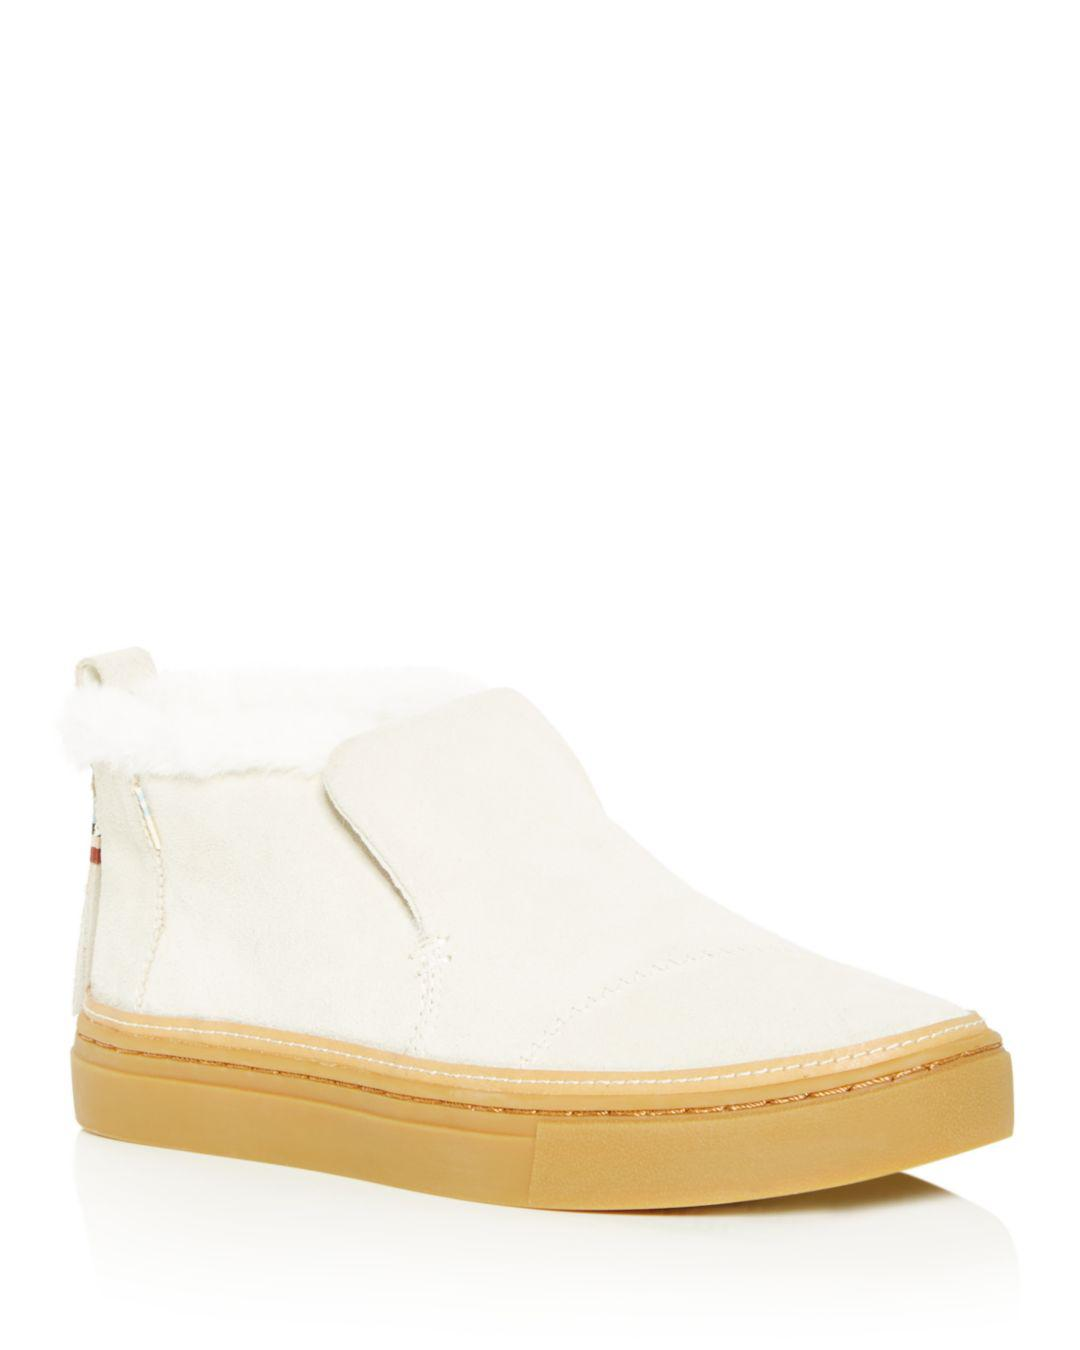 131109a58f6 Toms Women s Paxton Faux-fur Sneakers in Natural - Lyst